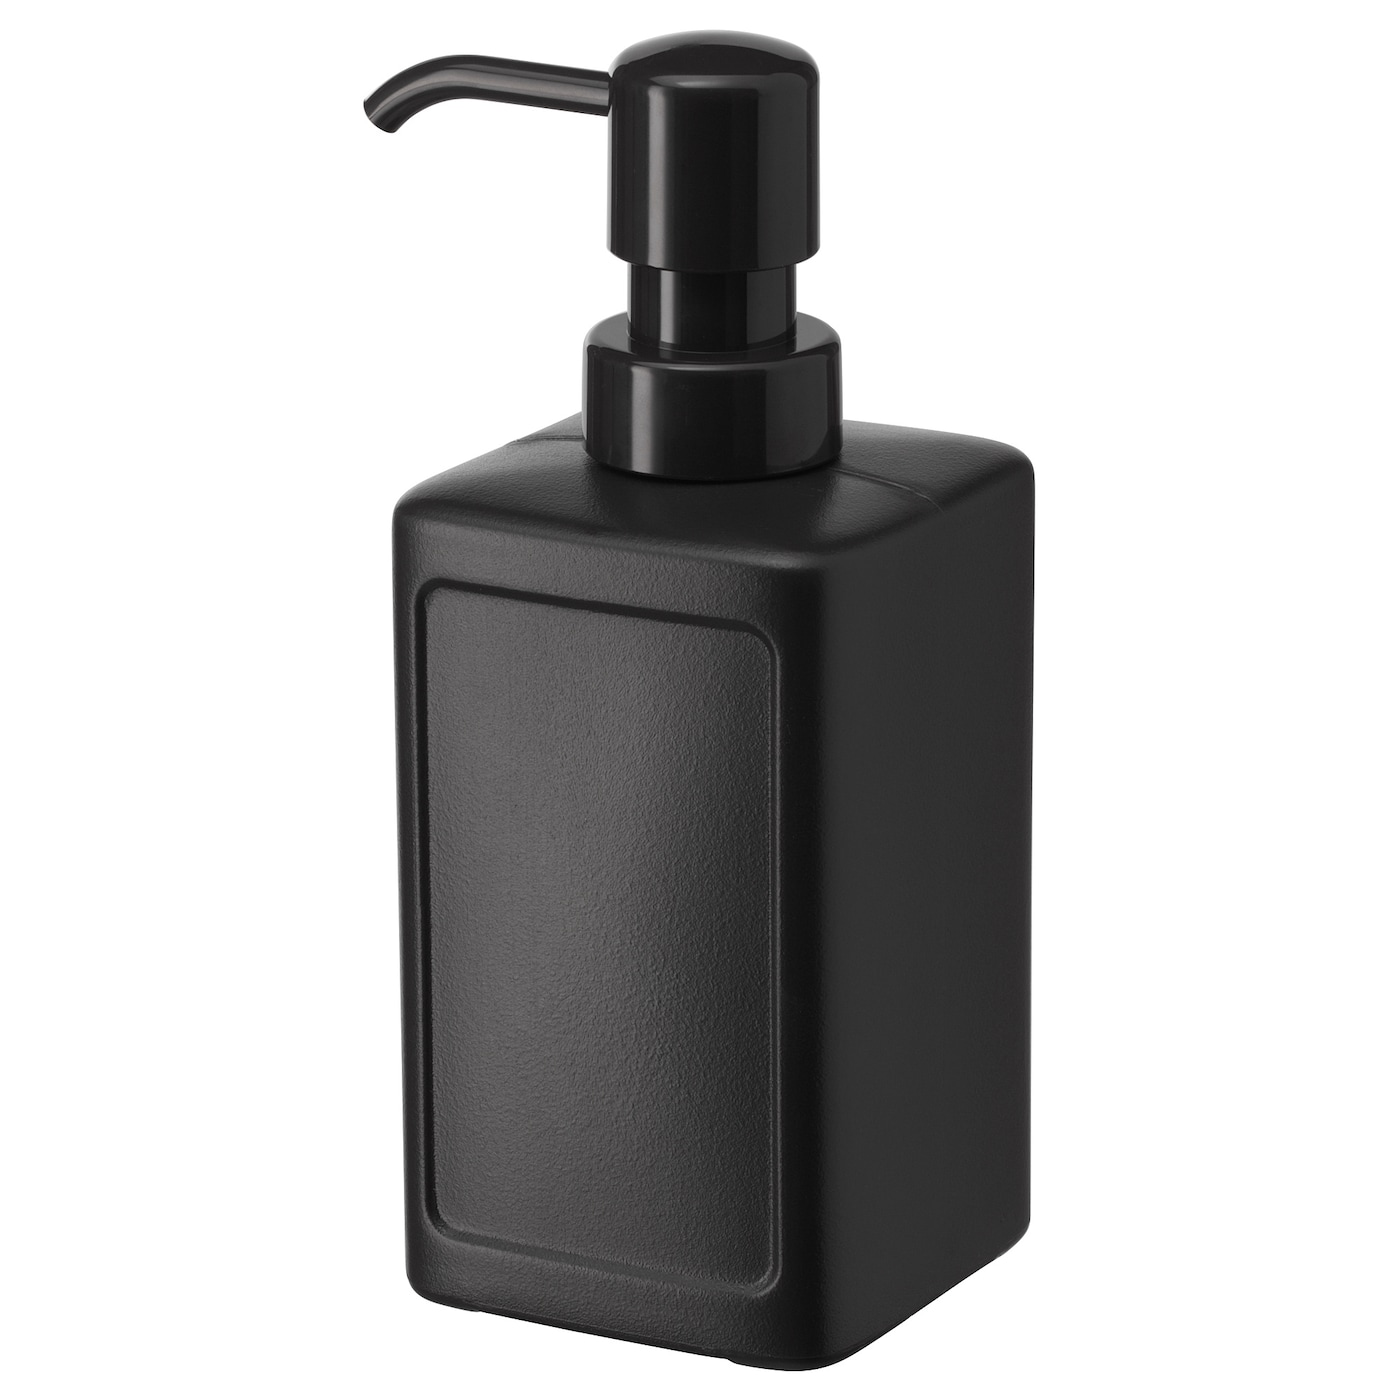 IKEA RINNIG soap dispenser Easy to refill as the dispenser has a wide opening.